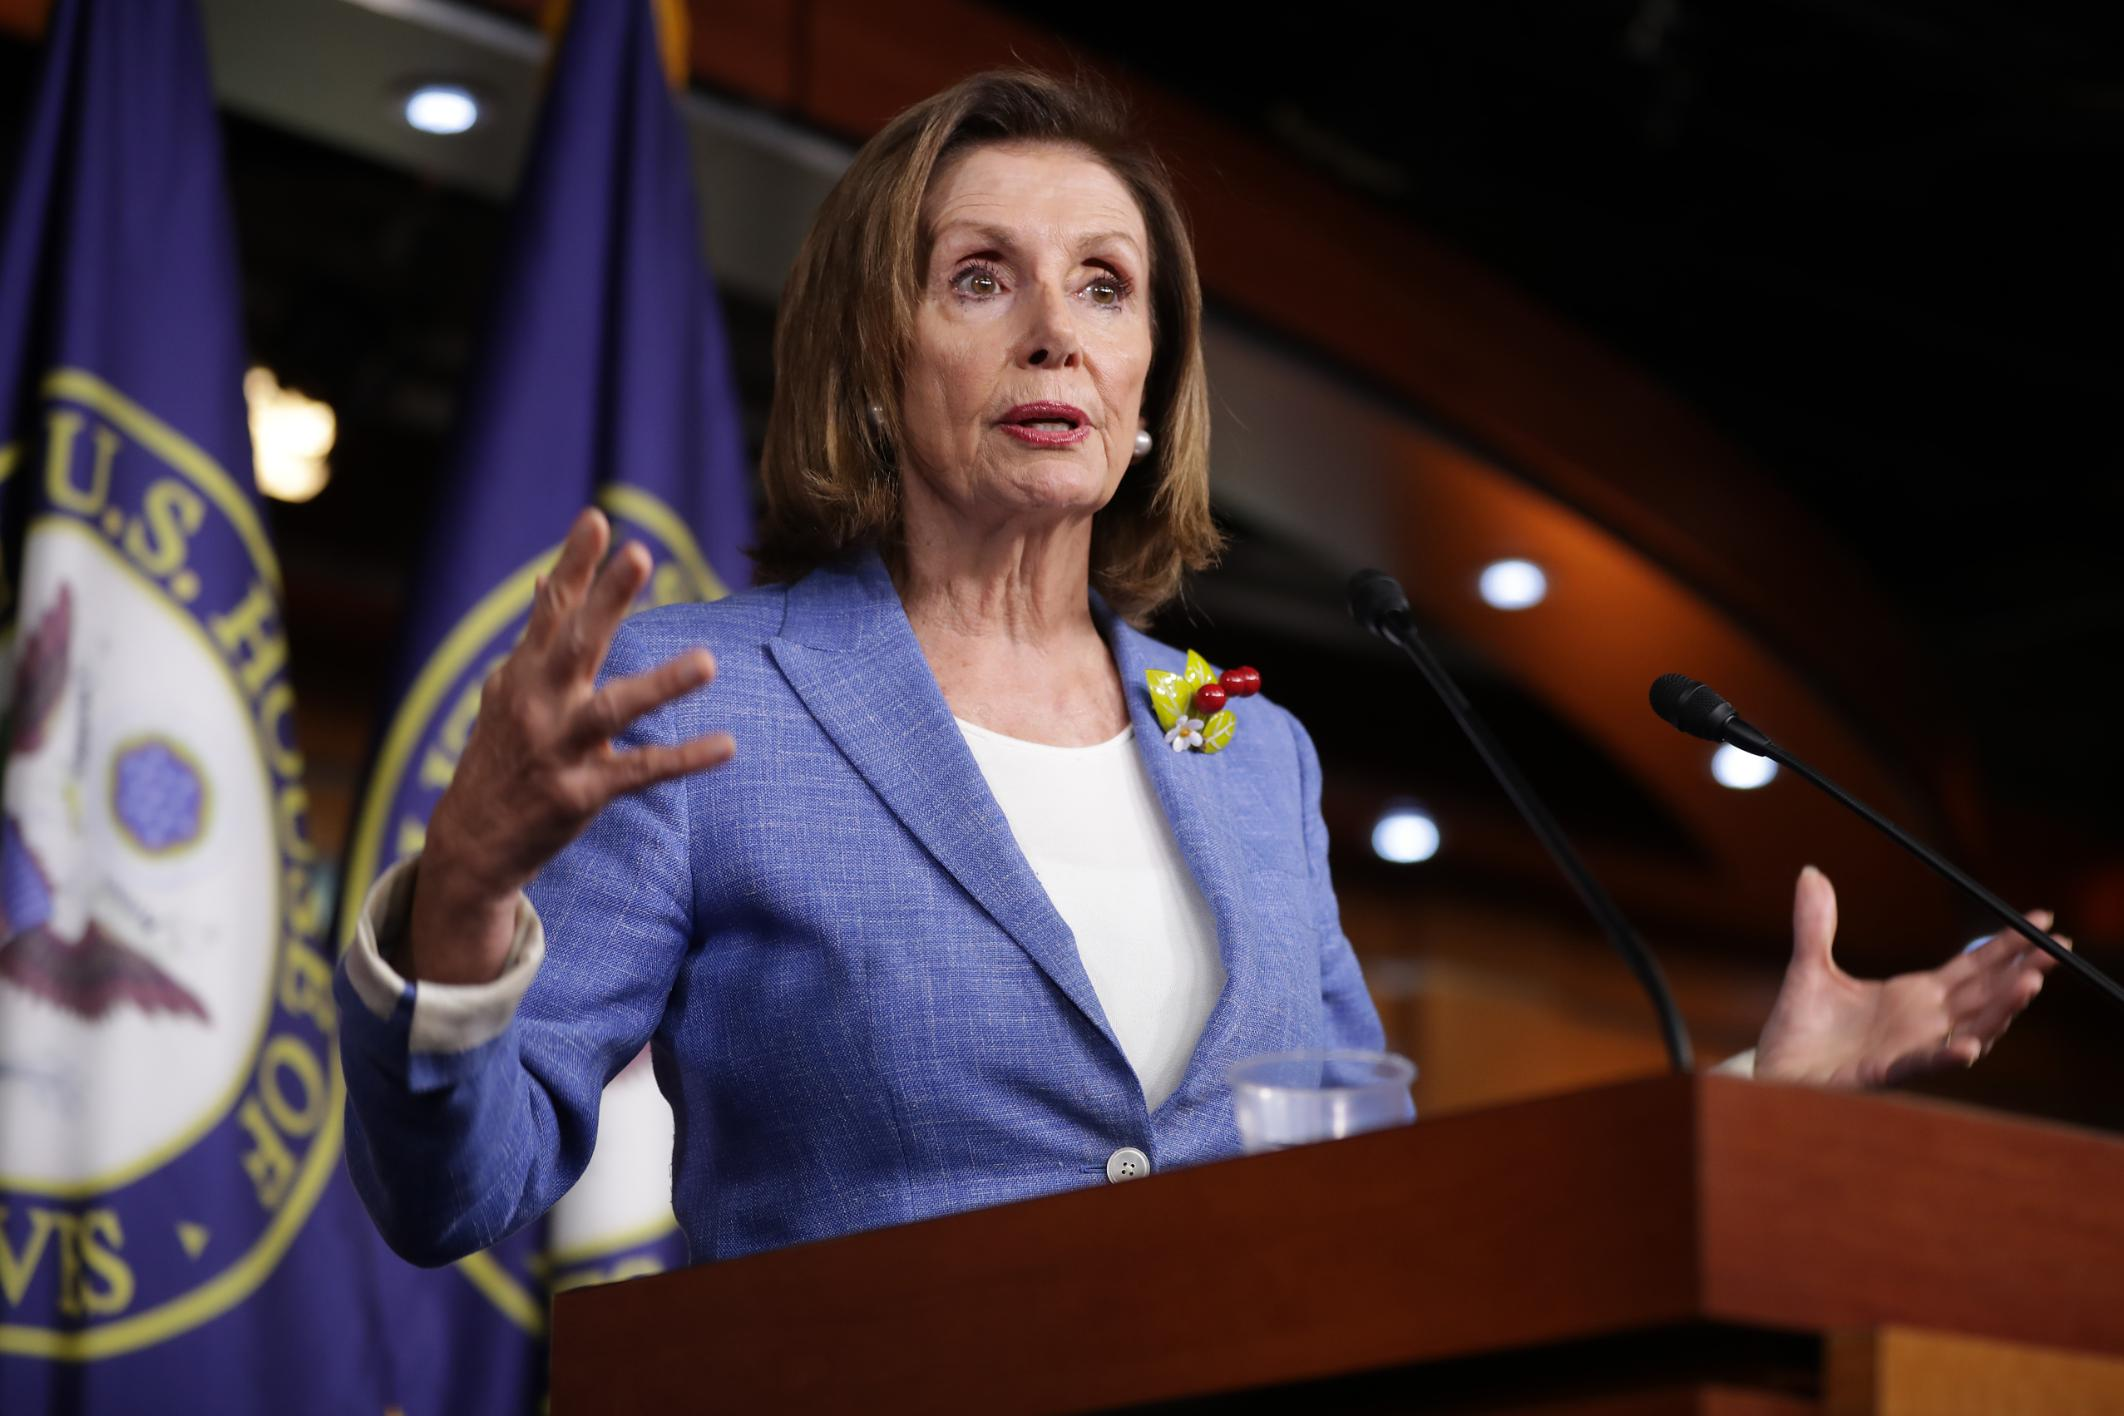 Pelosi and Mnuchin dig in on stimulus positions ahead of scheduled Monday talks